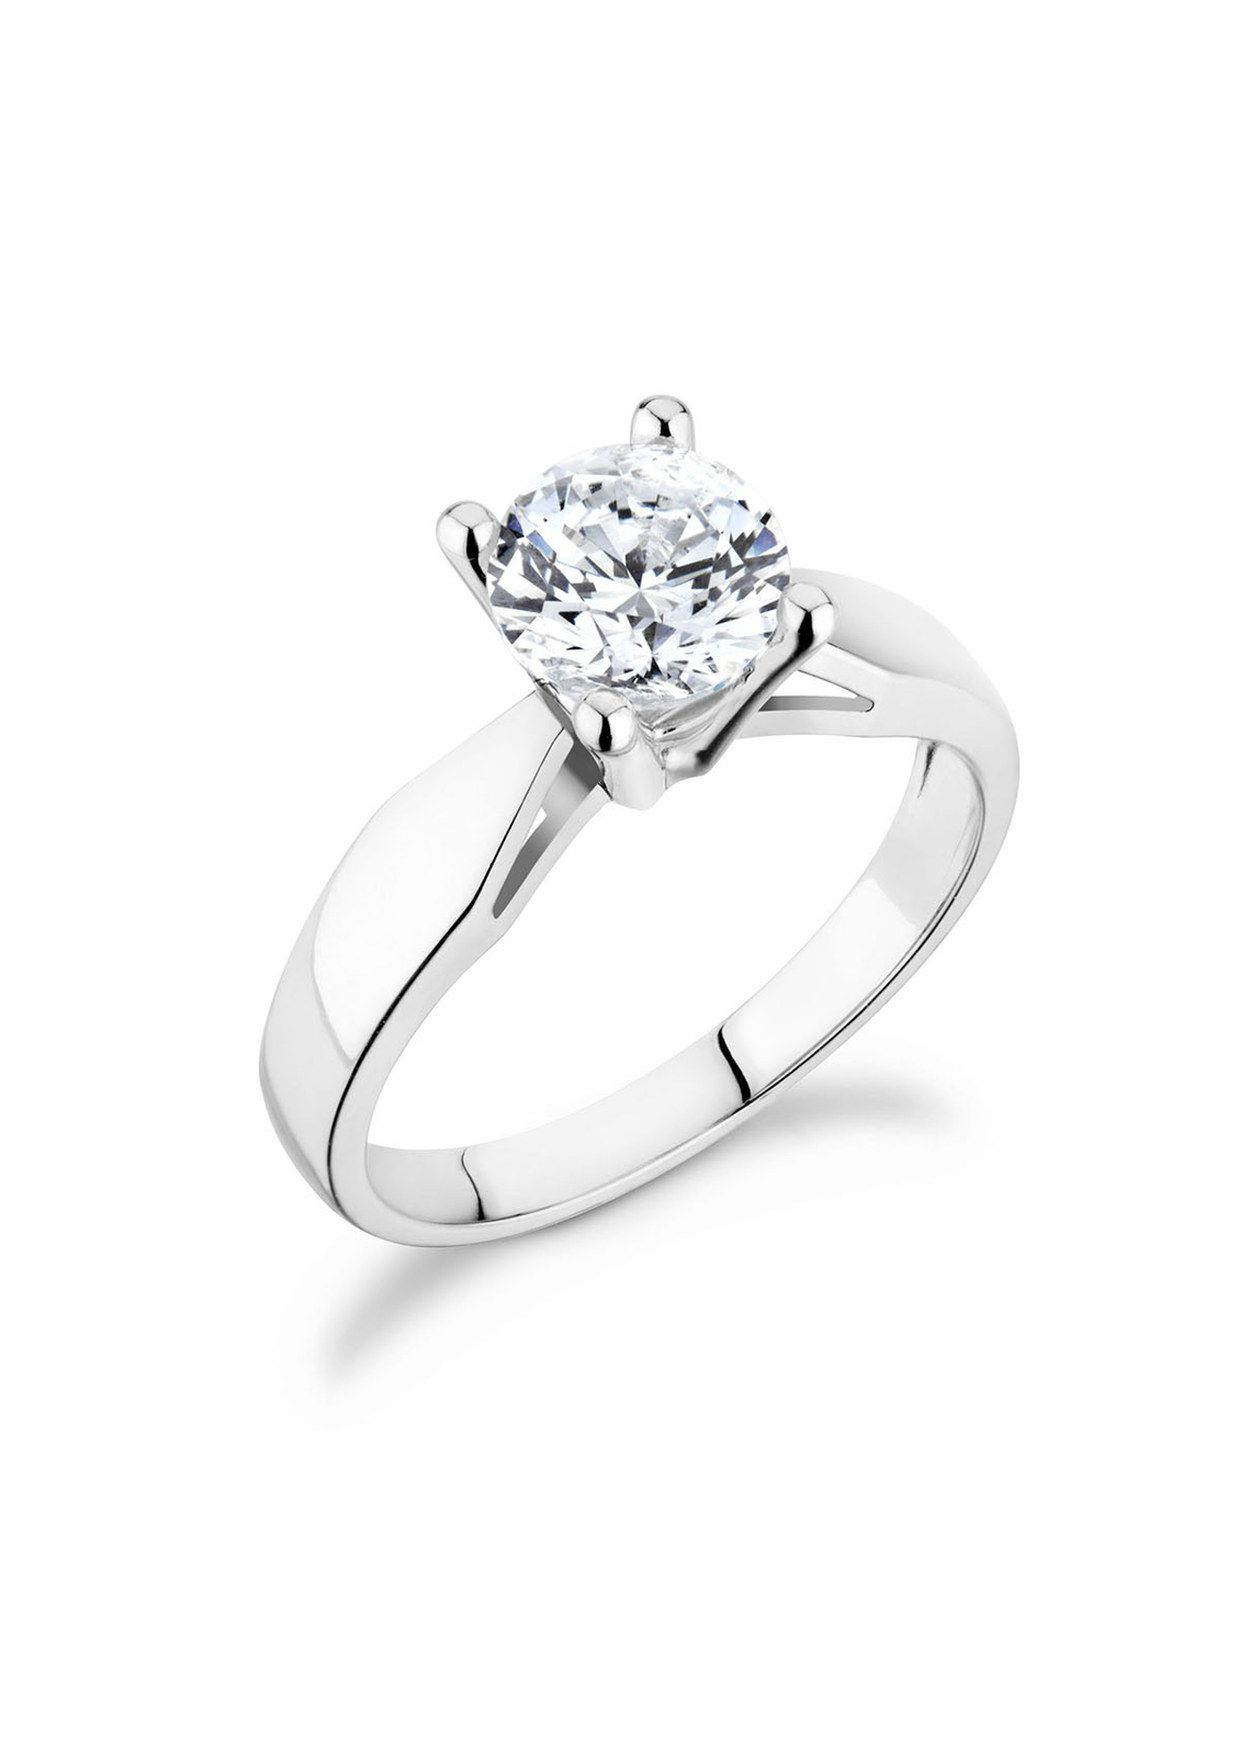 Bella Diamonds 17 Tcw Diamond Solitaire Ring Ideel In 2020 Engagement Ring Buying Guide Diamond Solitaire Rings Amazing Jewelry